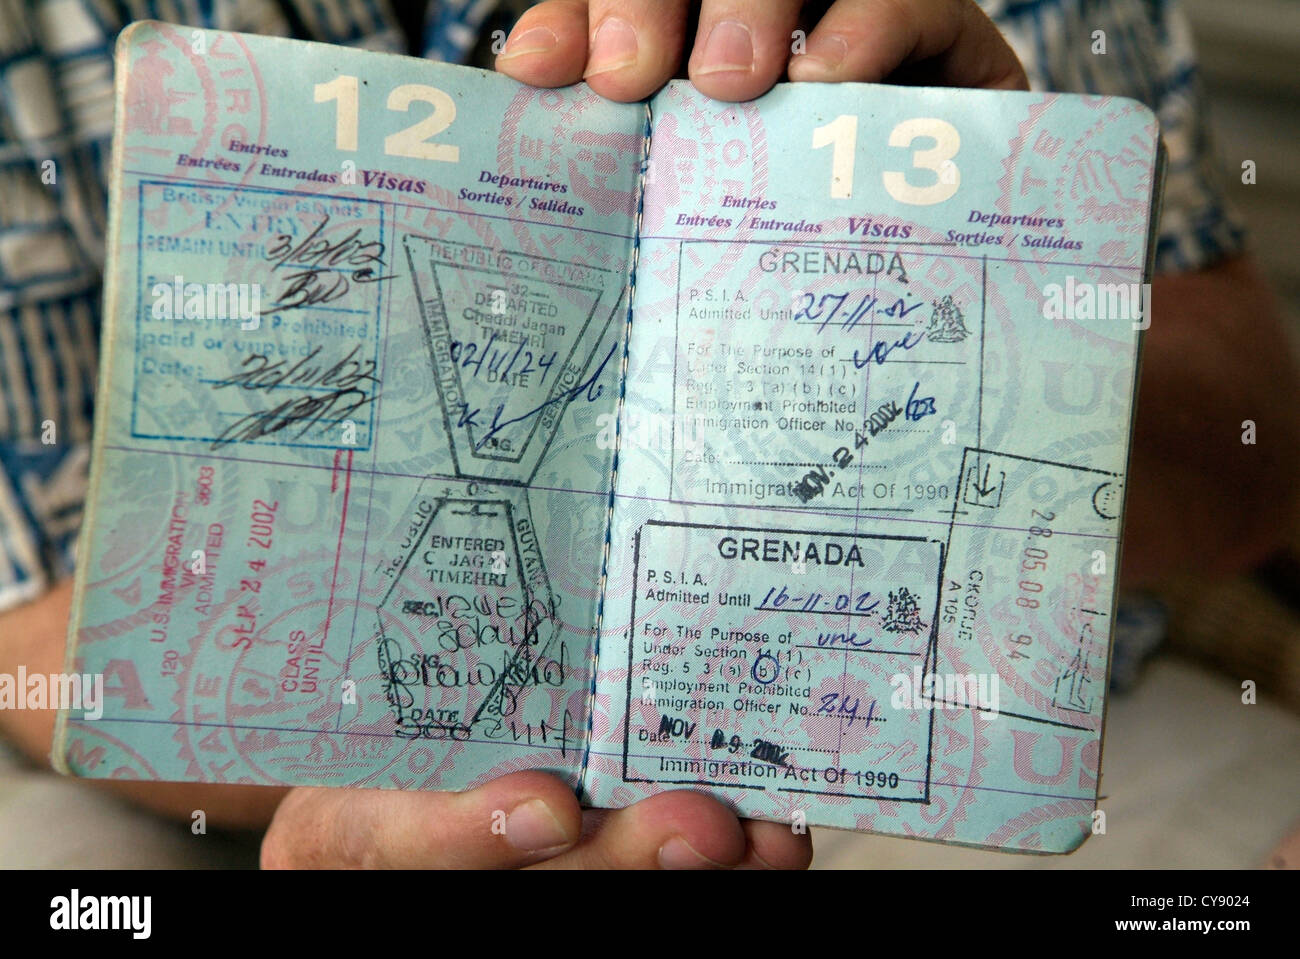 US PASSPORT Open At Pages Showing Visa Stamps